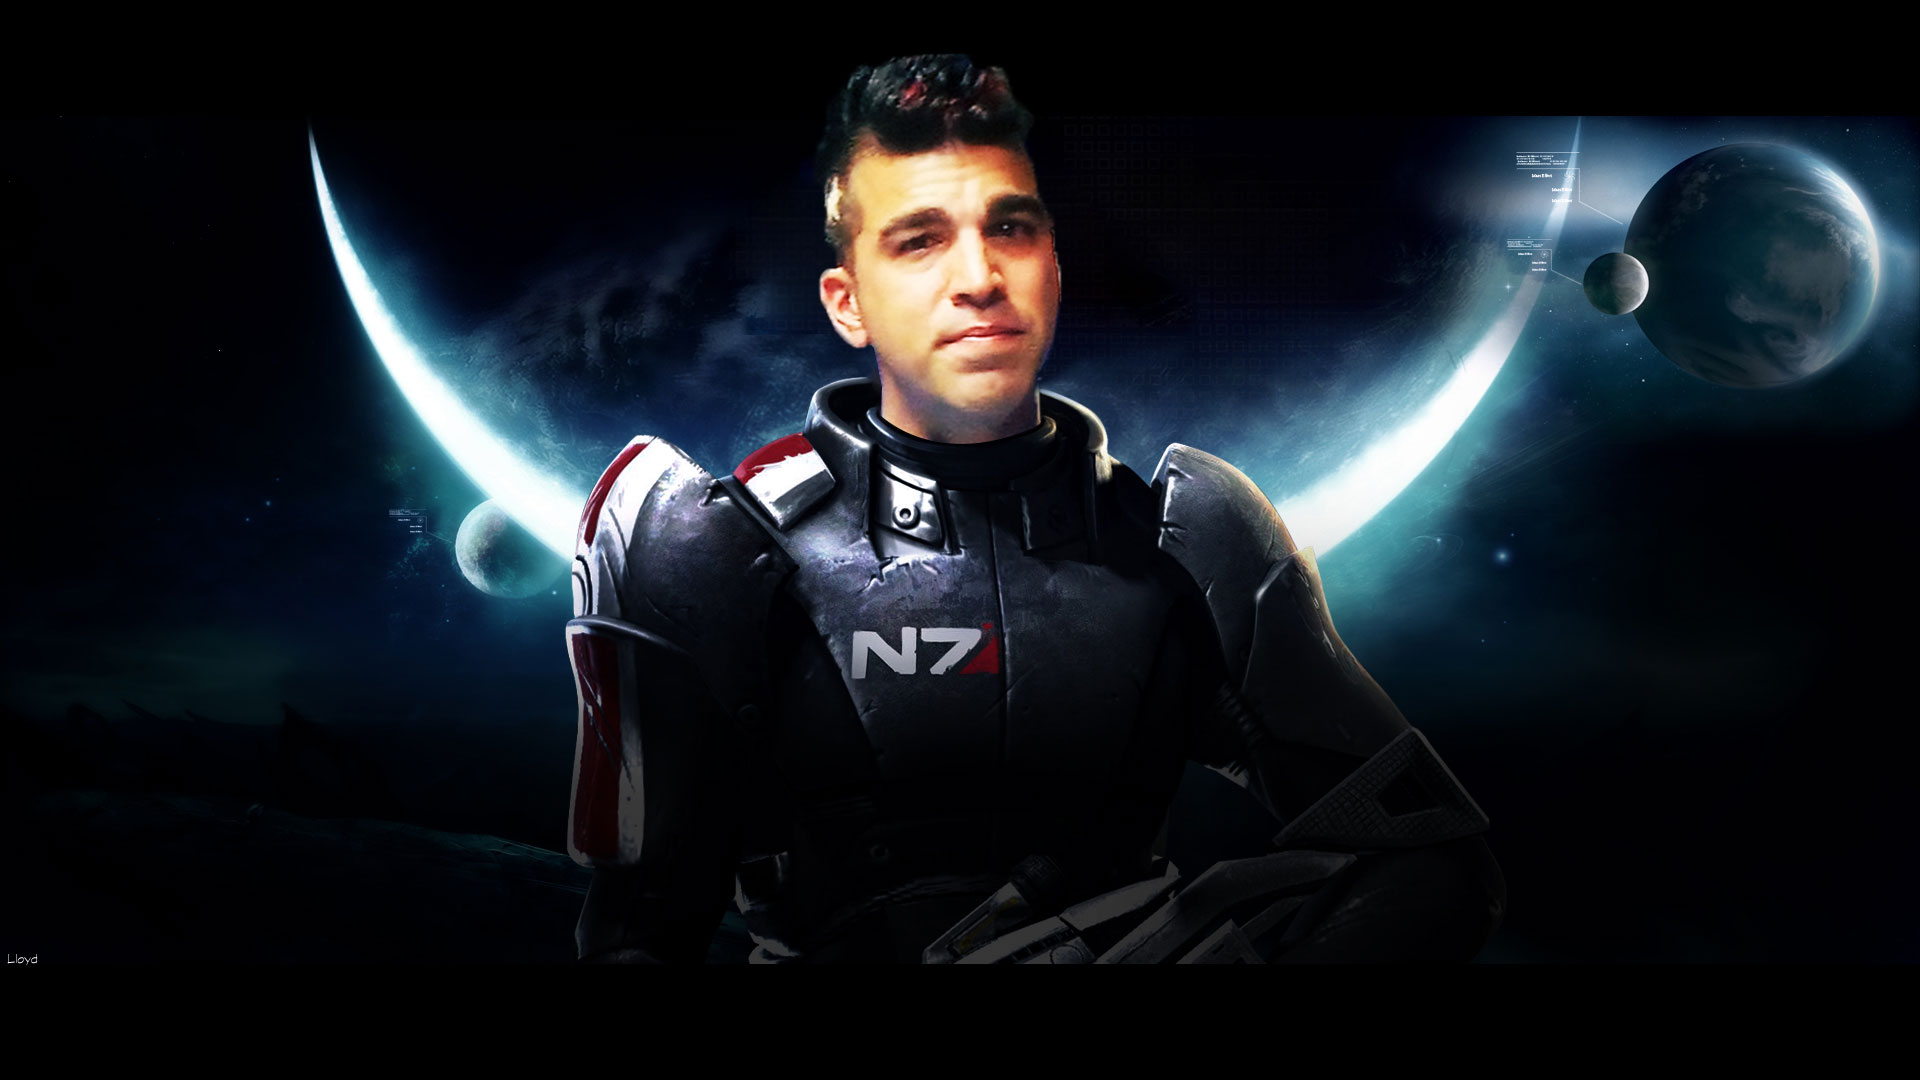 Do You Have a Crush on Bobak Ferdowsi NASA Staffer